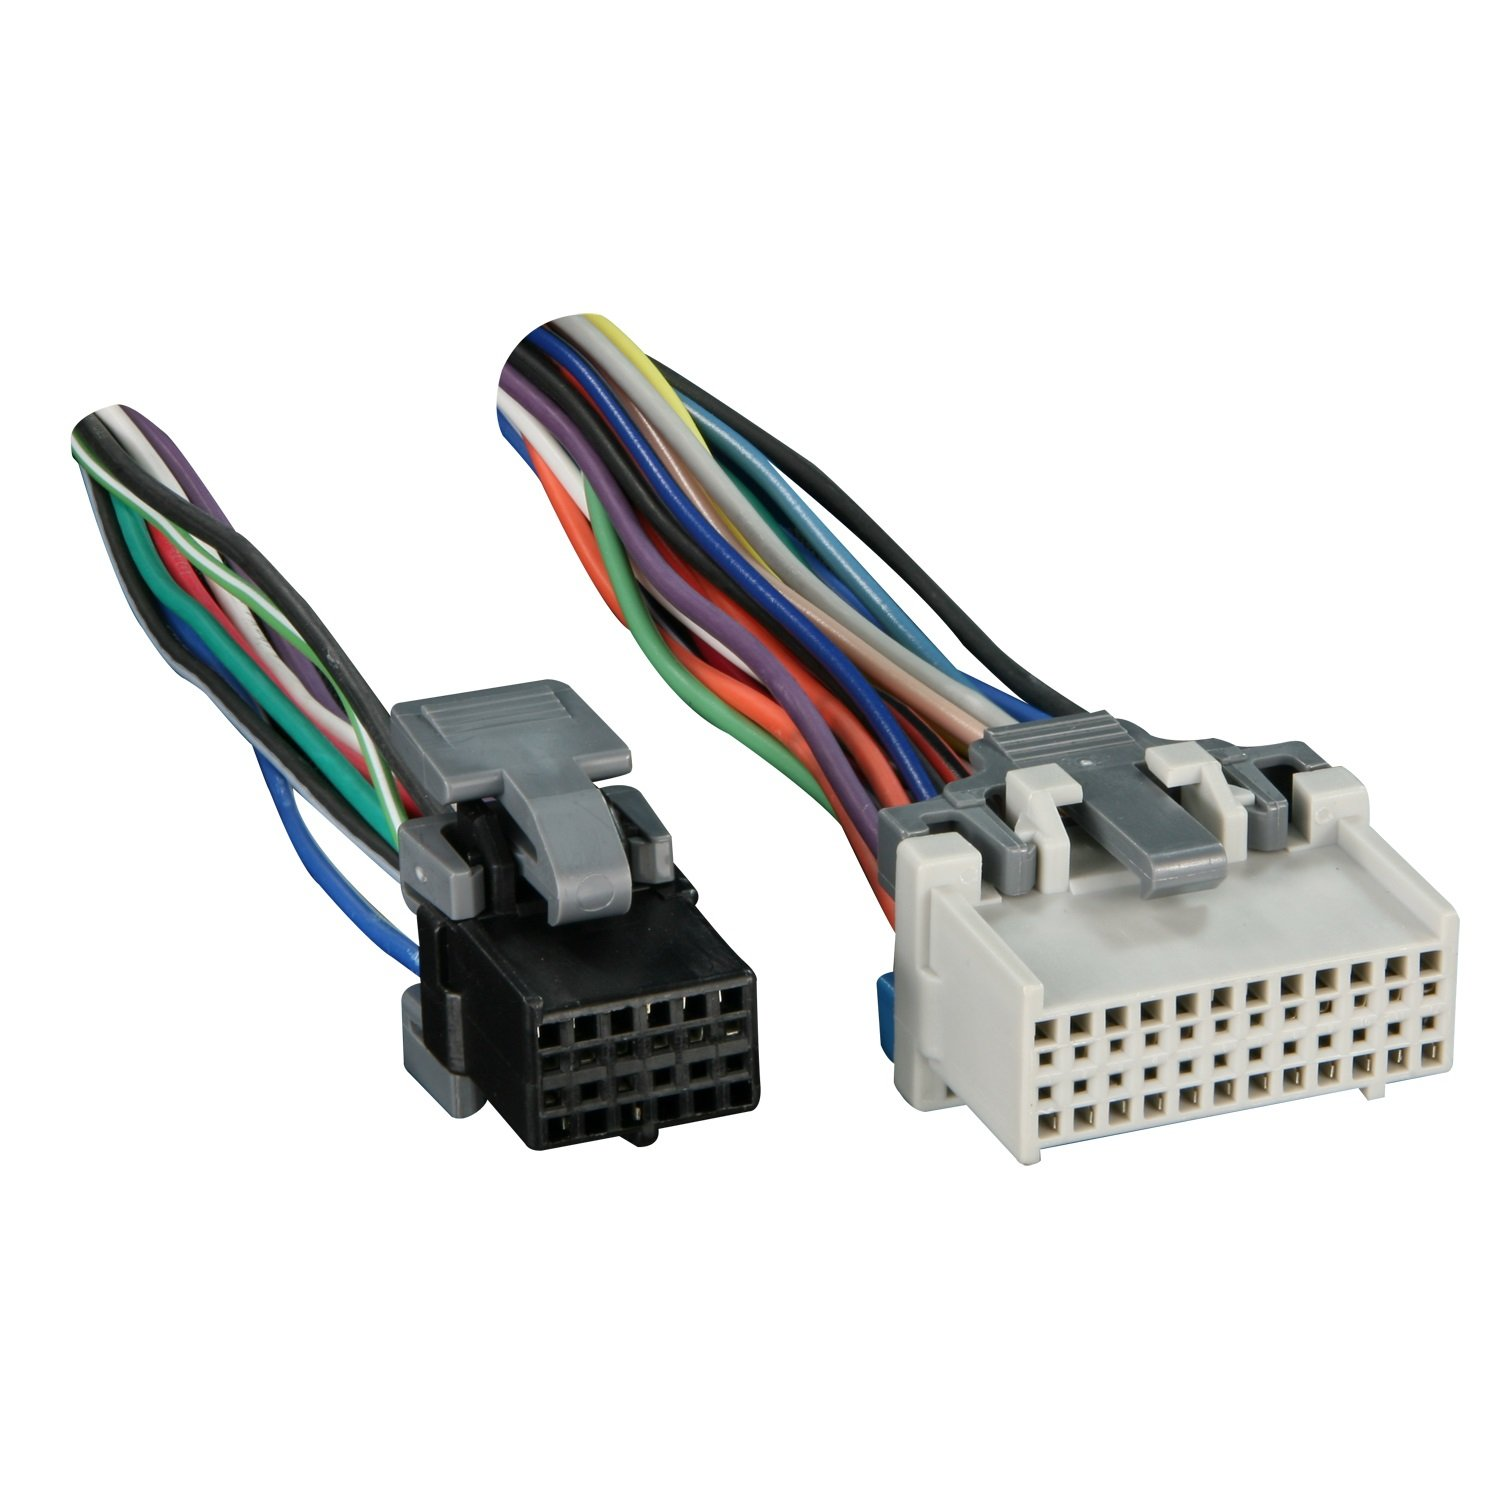 711log4bdML._SL1500_ amazon com metra turbowires 71 2003 1 wiring harness car electronics wiring harness chevy colorado at bayanpartner.co